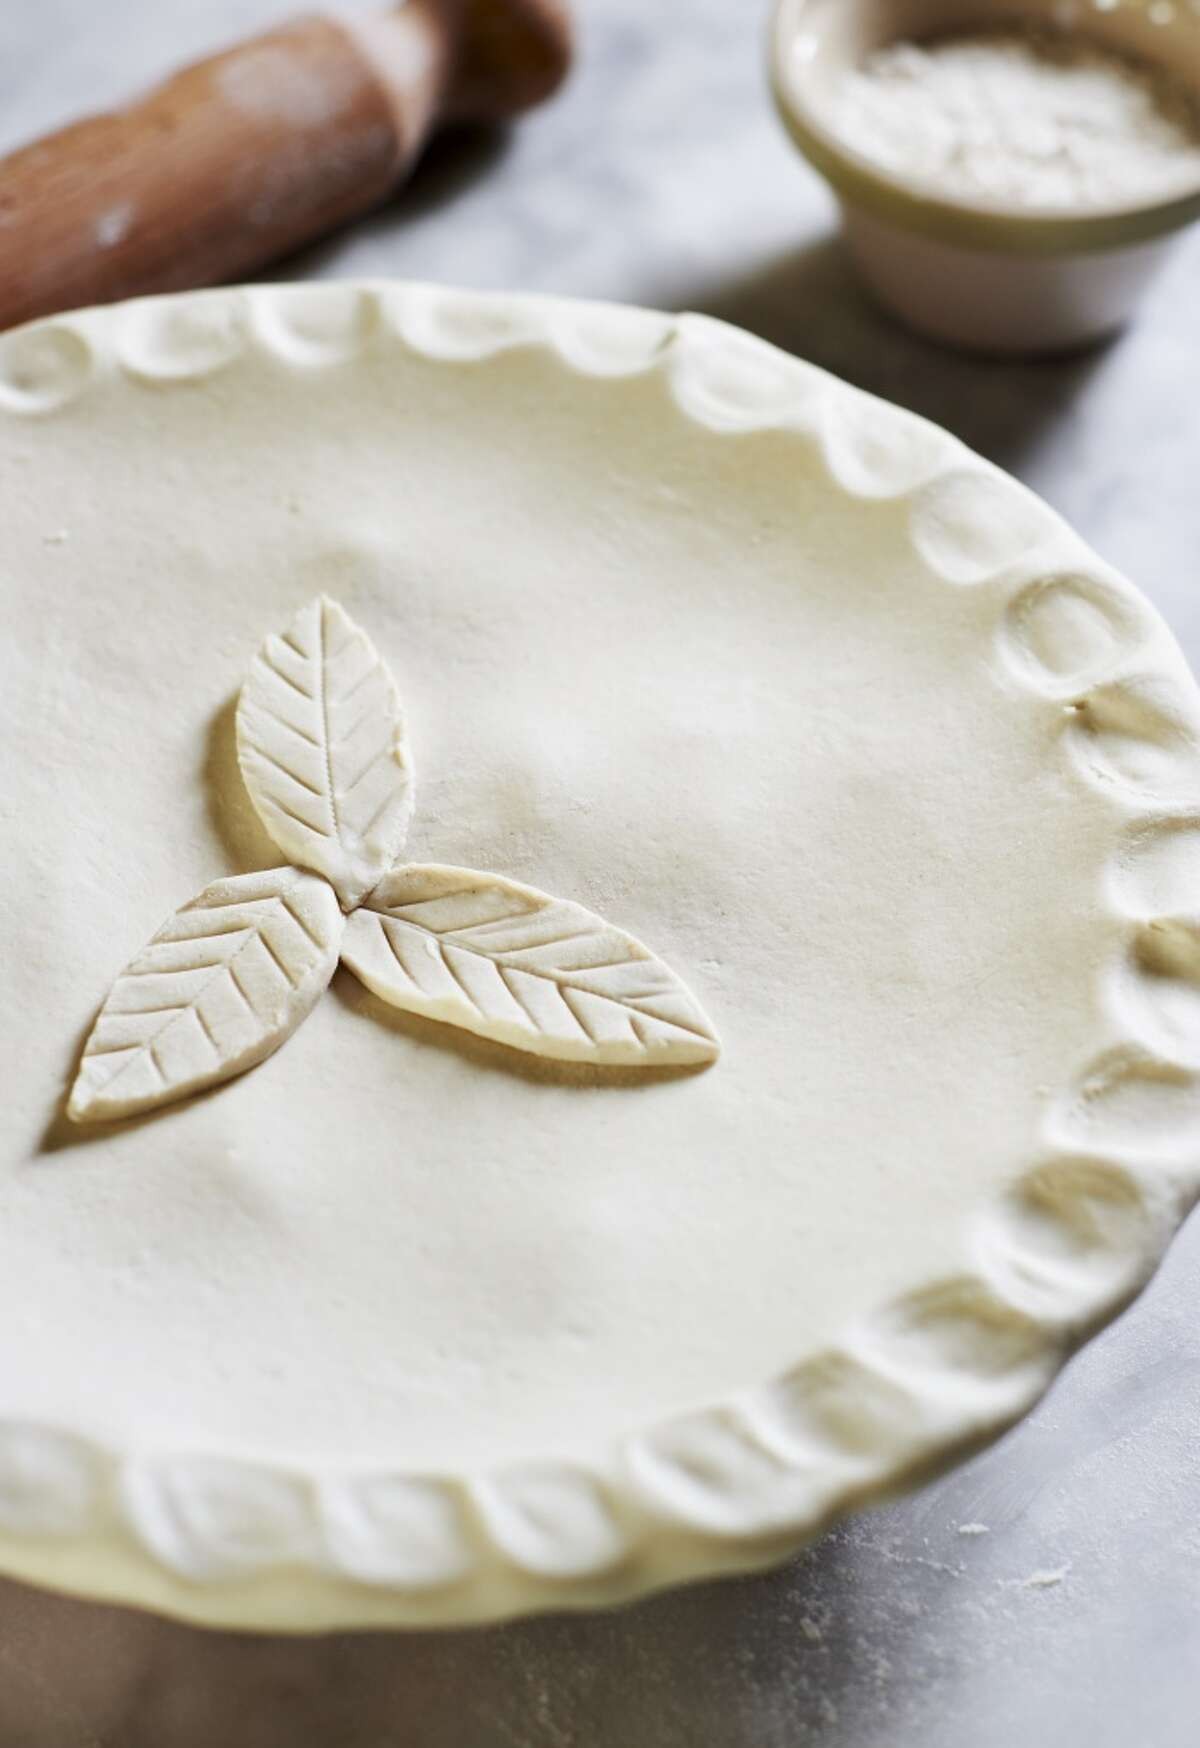 C Crusts on pecan and pumpkin pies can get soggy unless they're partially baked before filling. Blind-bake the crust by lining the unbaked crust with foil, then filling it with pie weights or dry beans and baking until the crust is about three-fourths done.